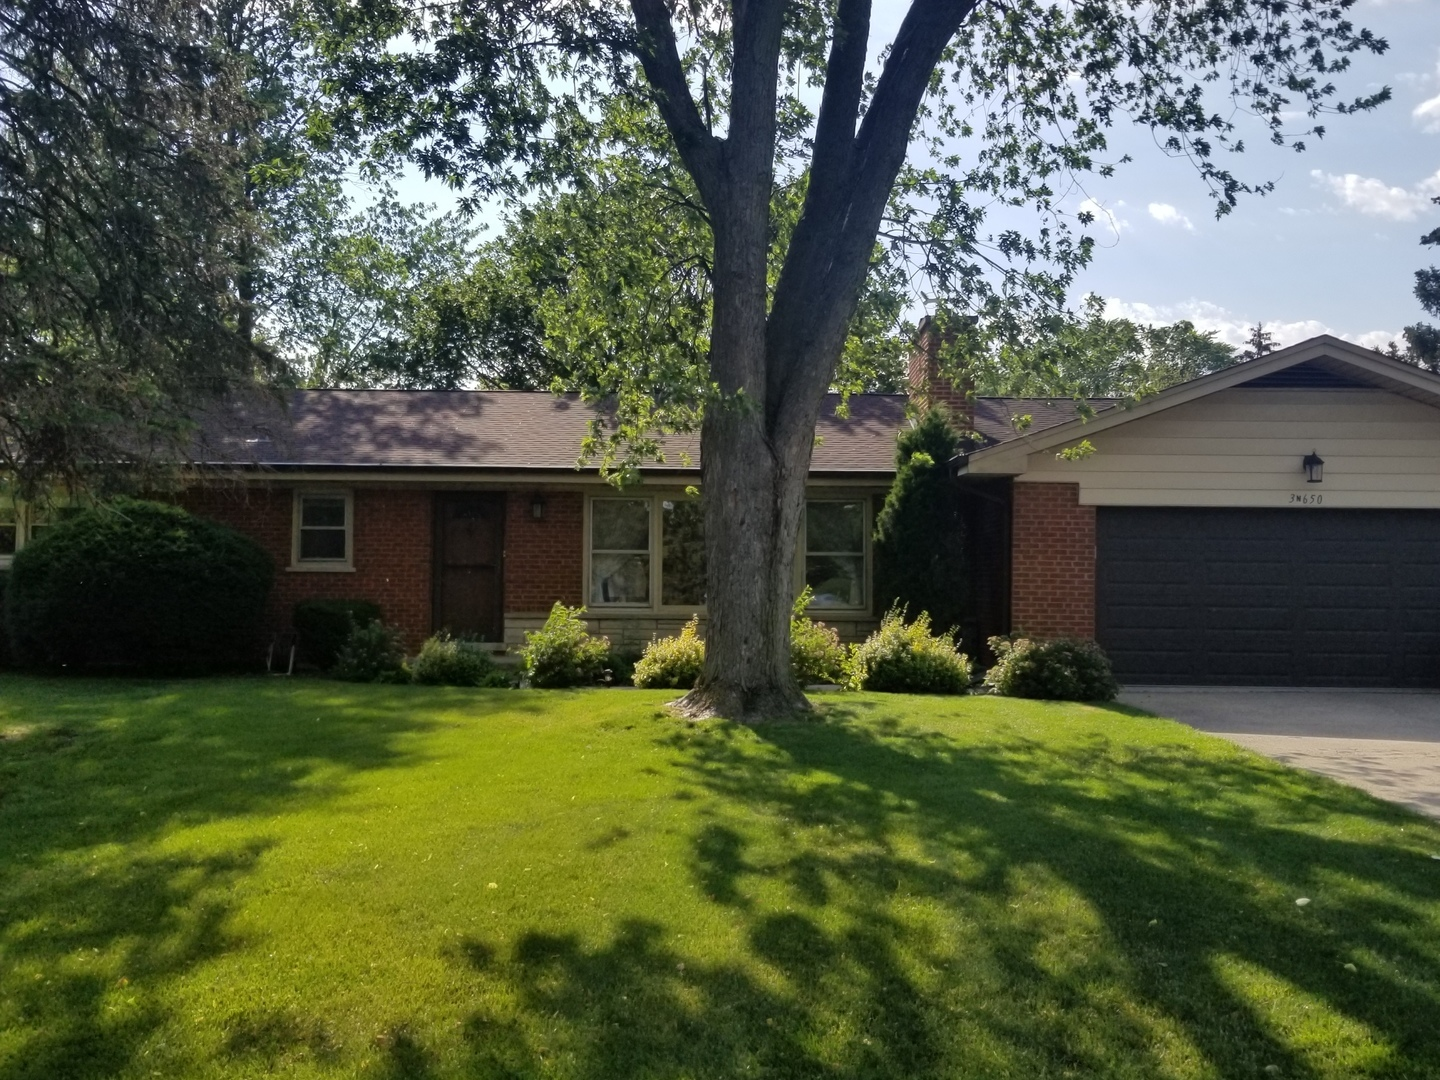 Photo of 3N650 Central Court, Addison, IL 60101